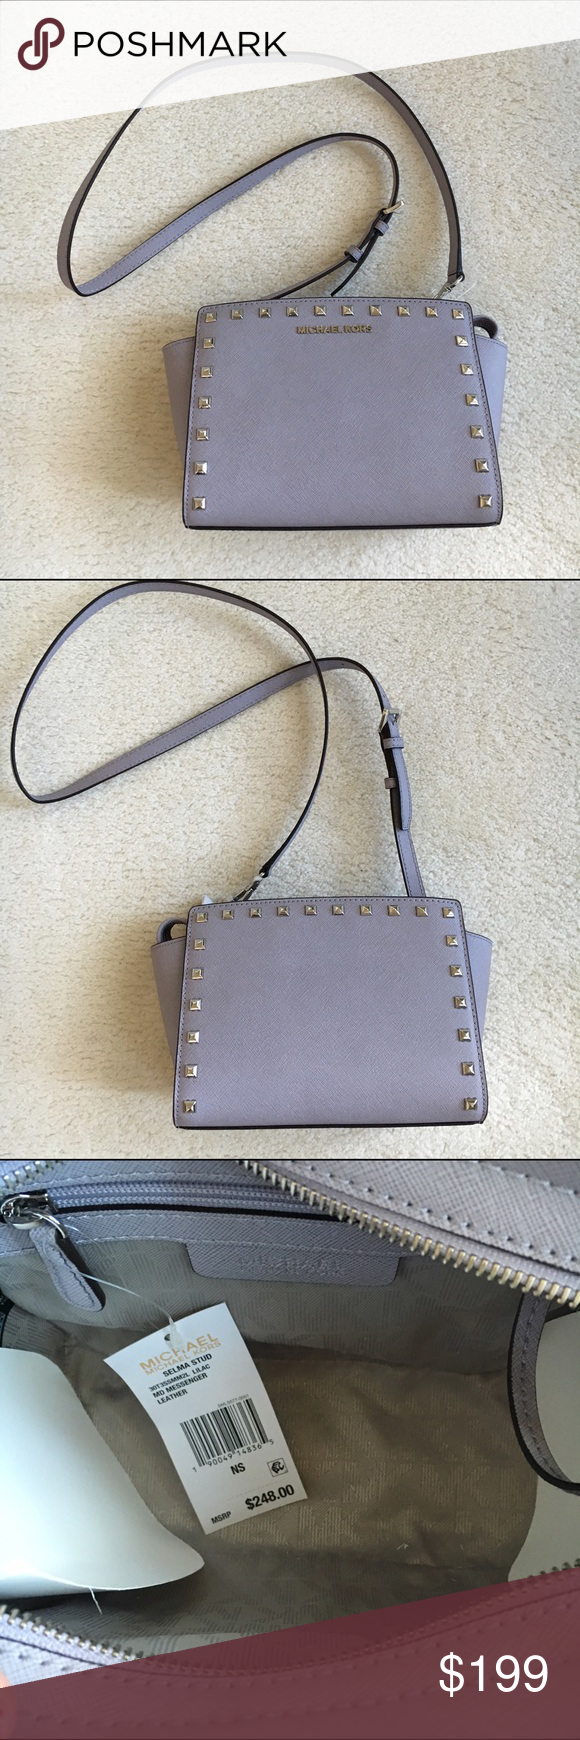 Michael Kors Crossbody Nwt Studs Bag And Hardware Selma Medium Lilac Authentic Leather Purse In With Silver By Measures